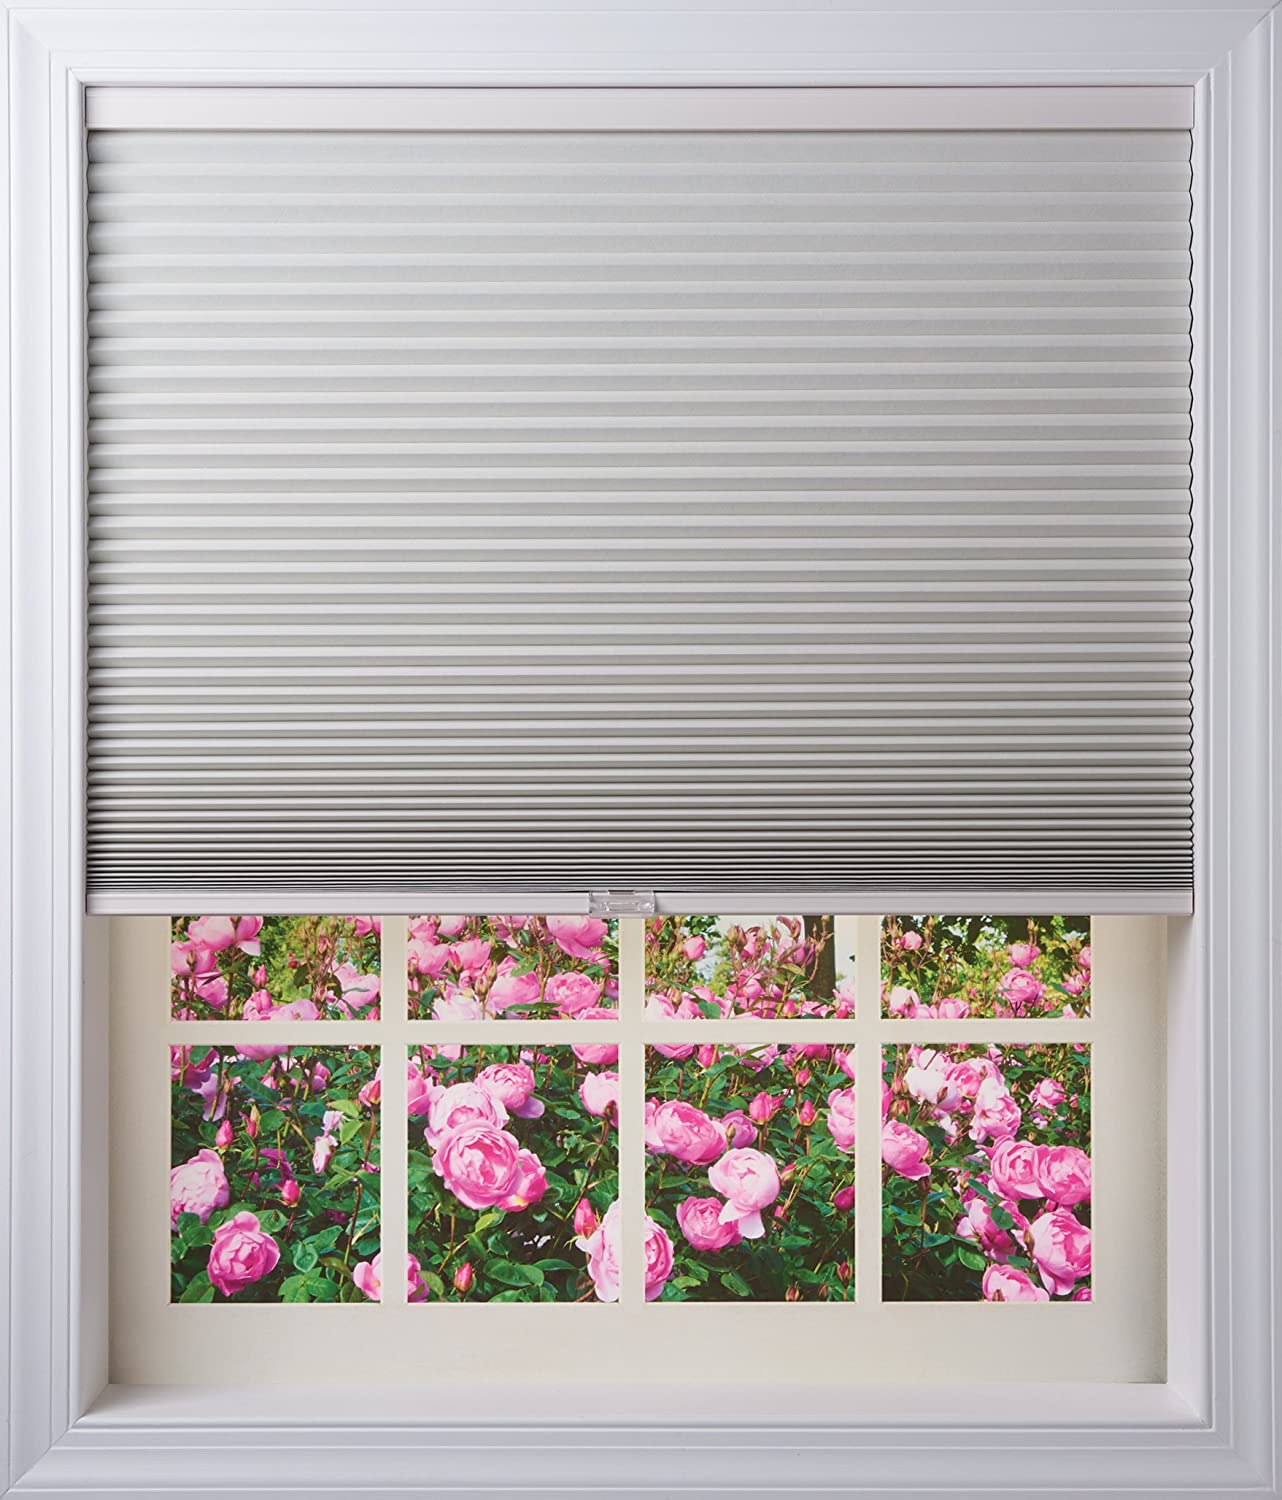 34 inch blinds faux wood blinds new age blinds 34 inch 72 cordless cellular shades inside frame mount white dove room darkening worldwide 7234nawfirdwhd christmas gift